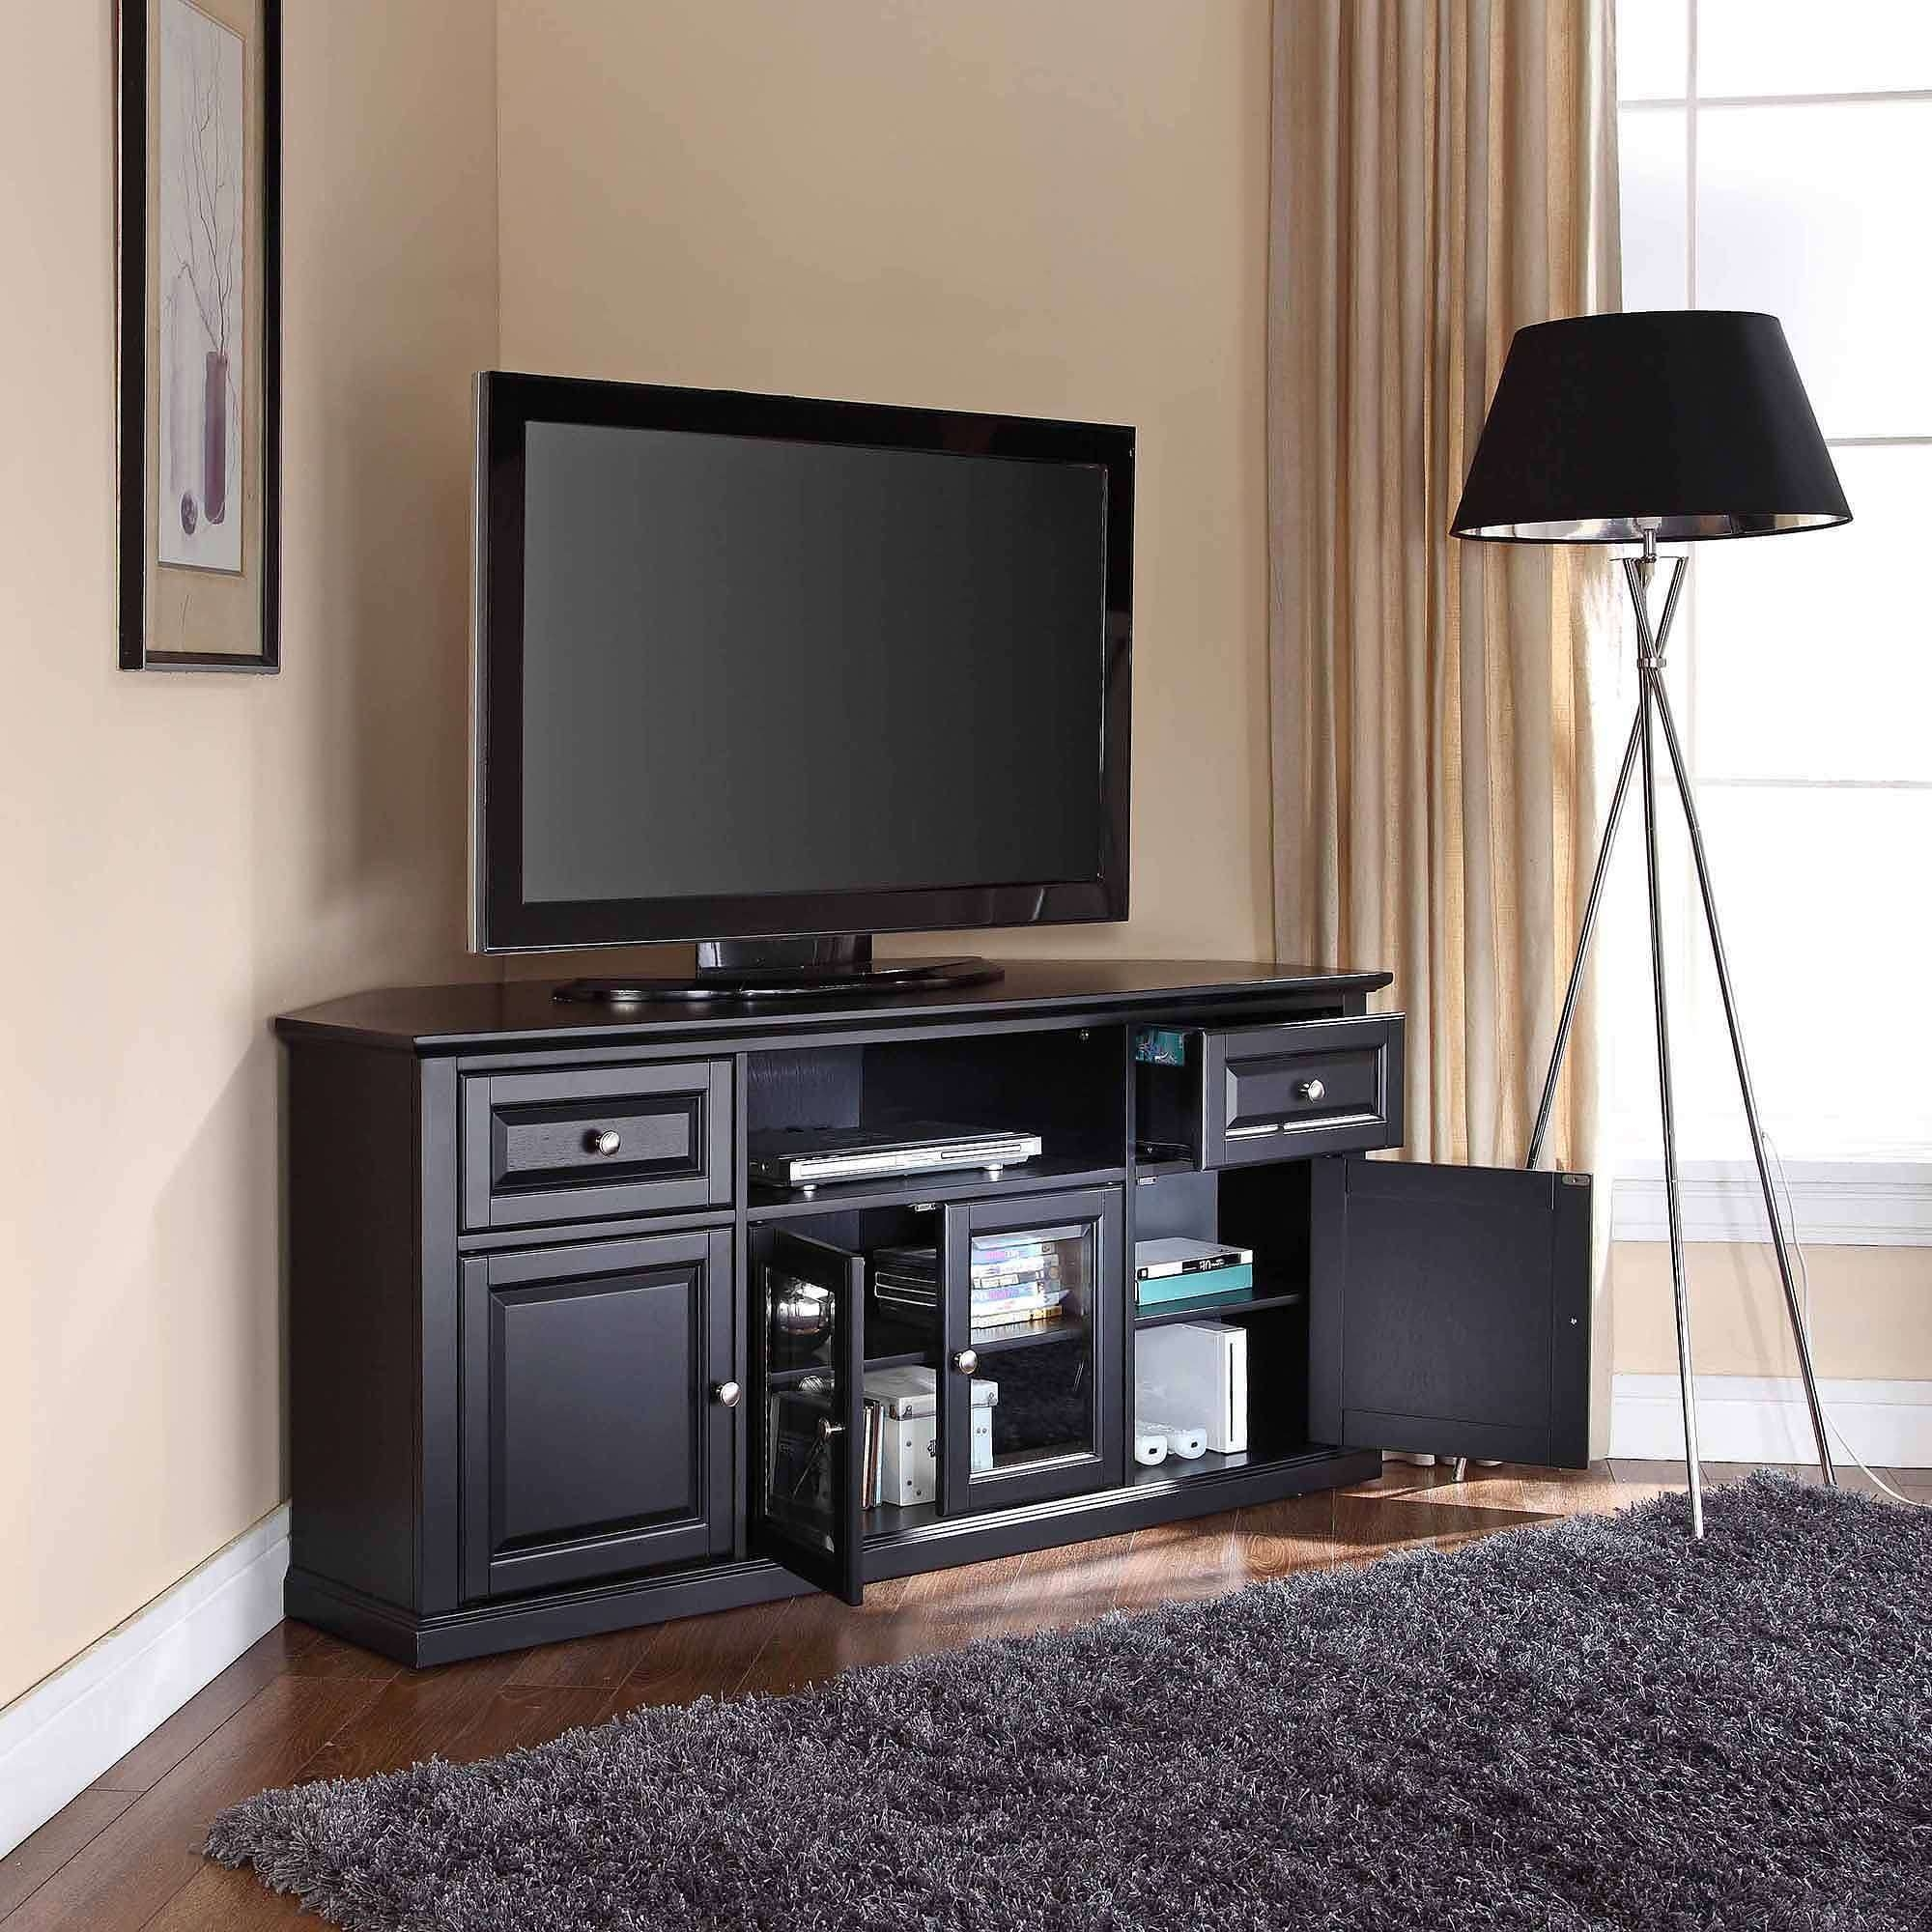 """Crosley Furniture Corner Tv Stand For Tvs Up To 60"""" – Walmart With Regard To Retro Corner Tv Stands (View 4 of 15)"""